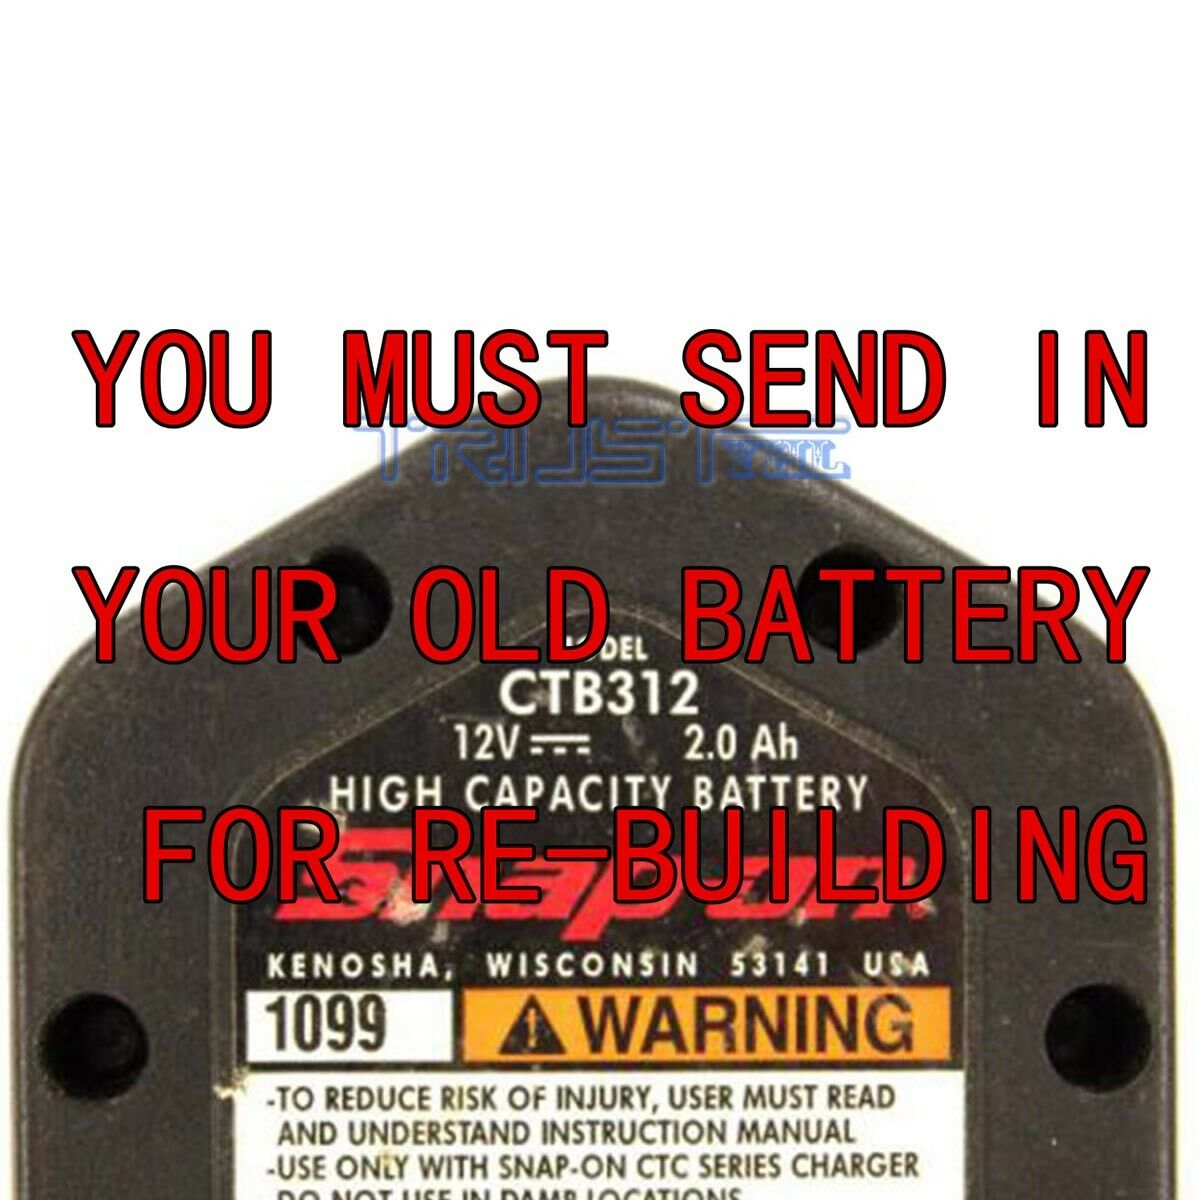 Re-build service for SNAP-ON 12 VOLT BATTERY CTB312 3.0AH NI-MH